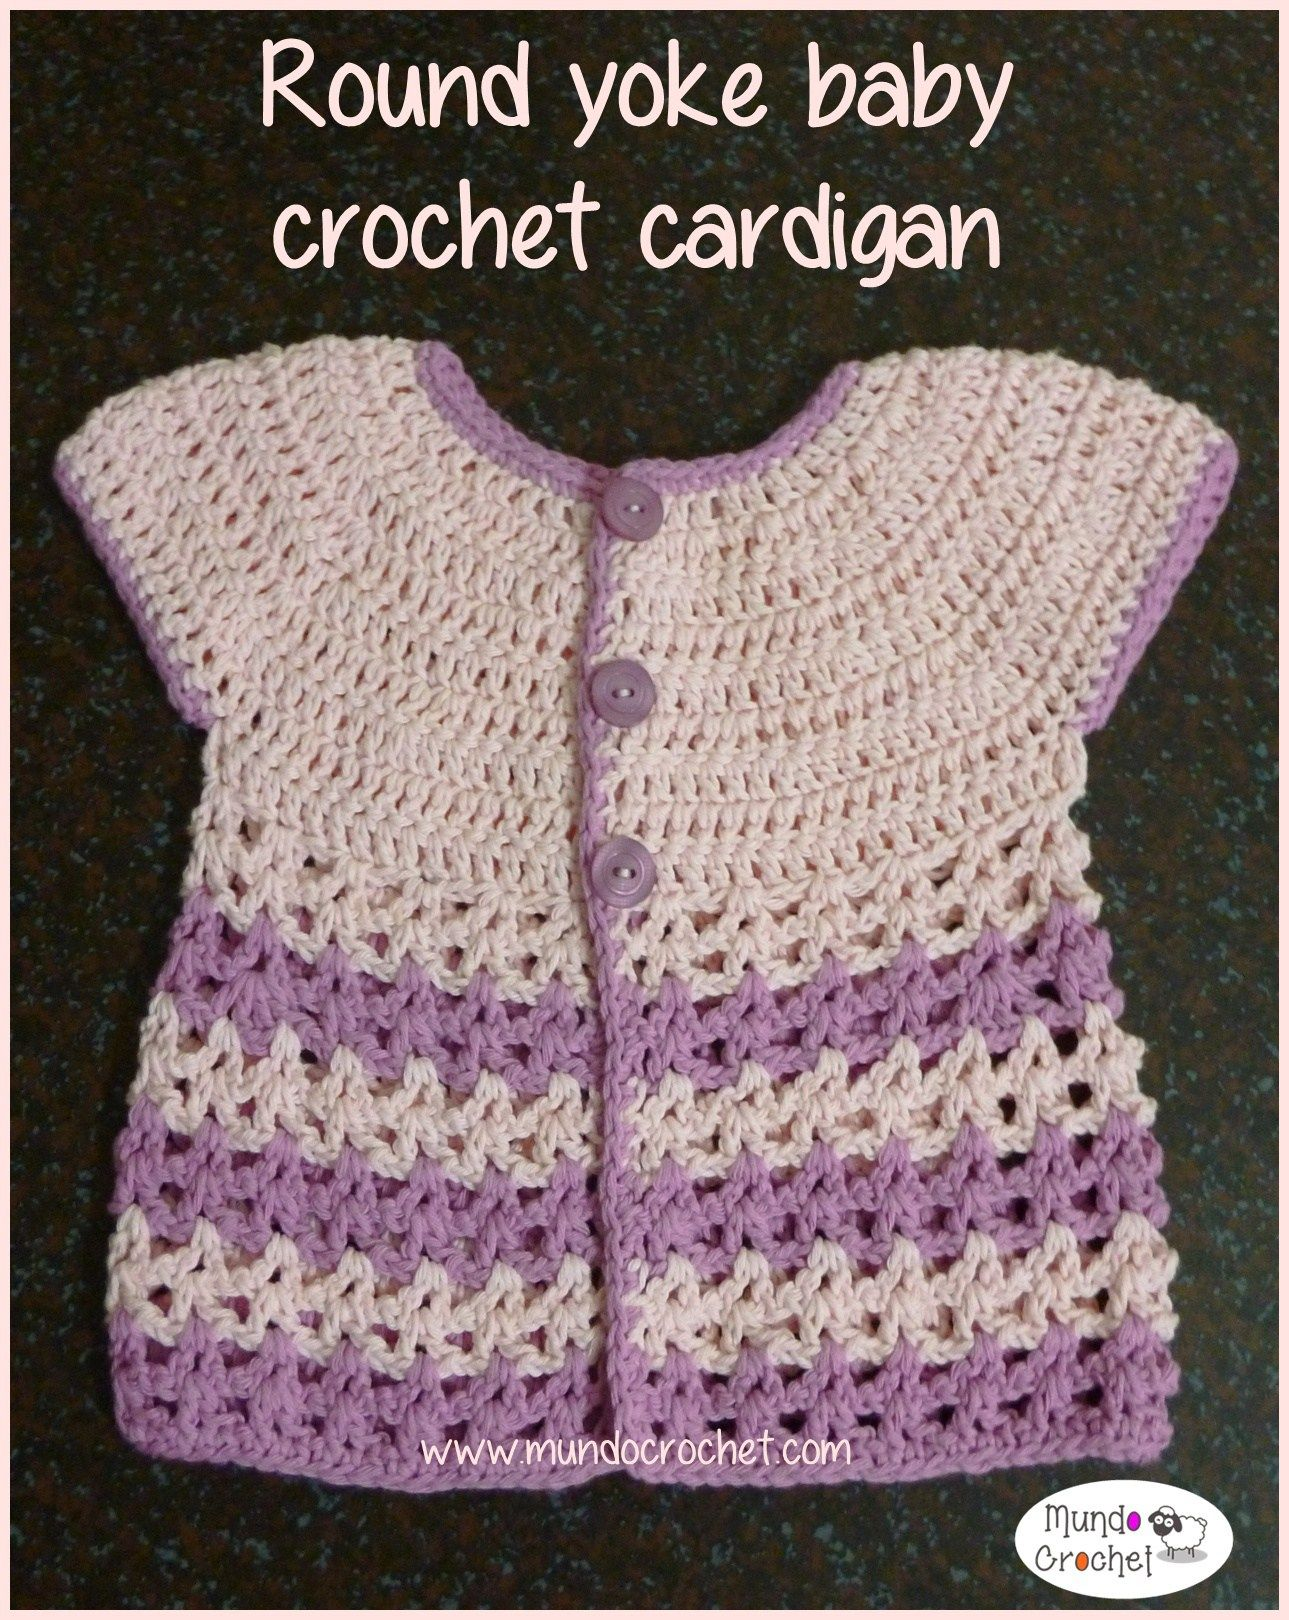 Round yoke baby crochet cardigan free pattern and tutorial with ...